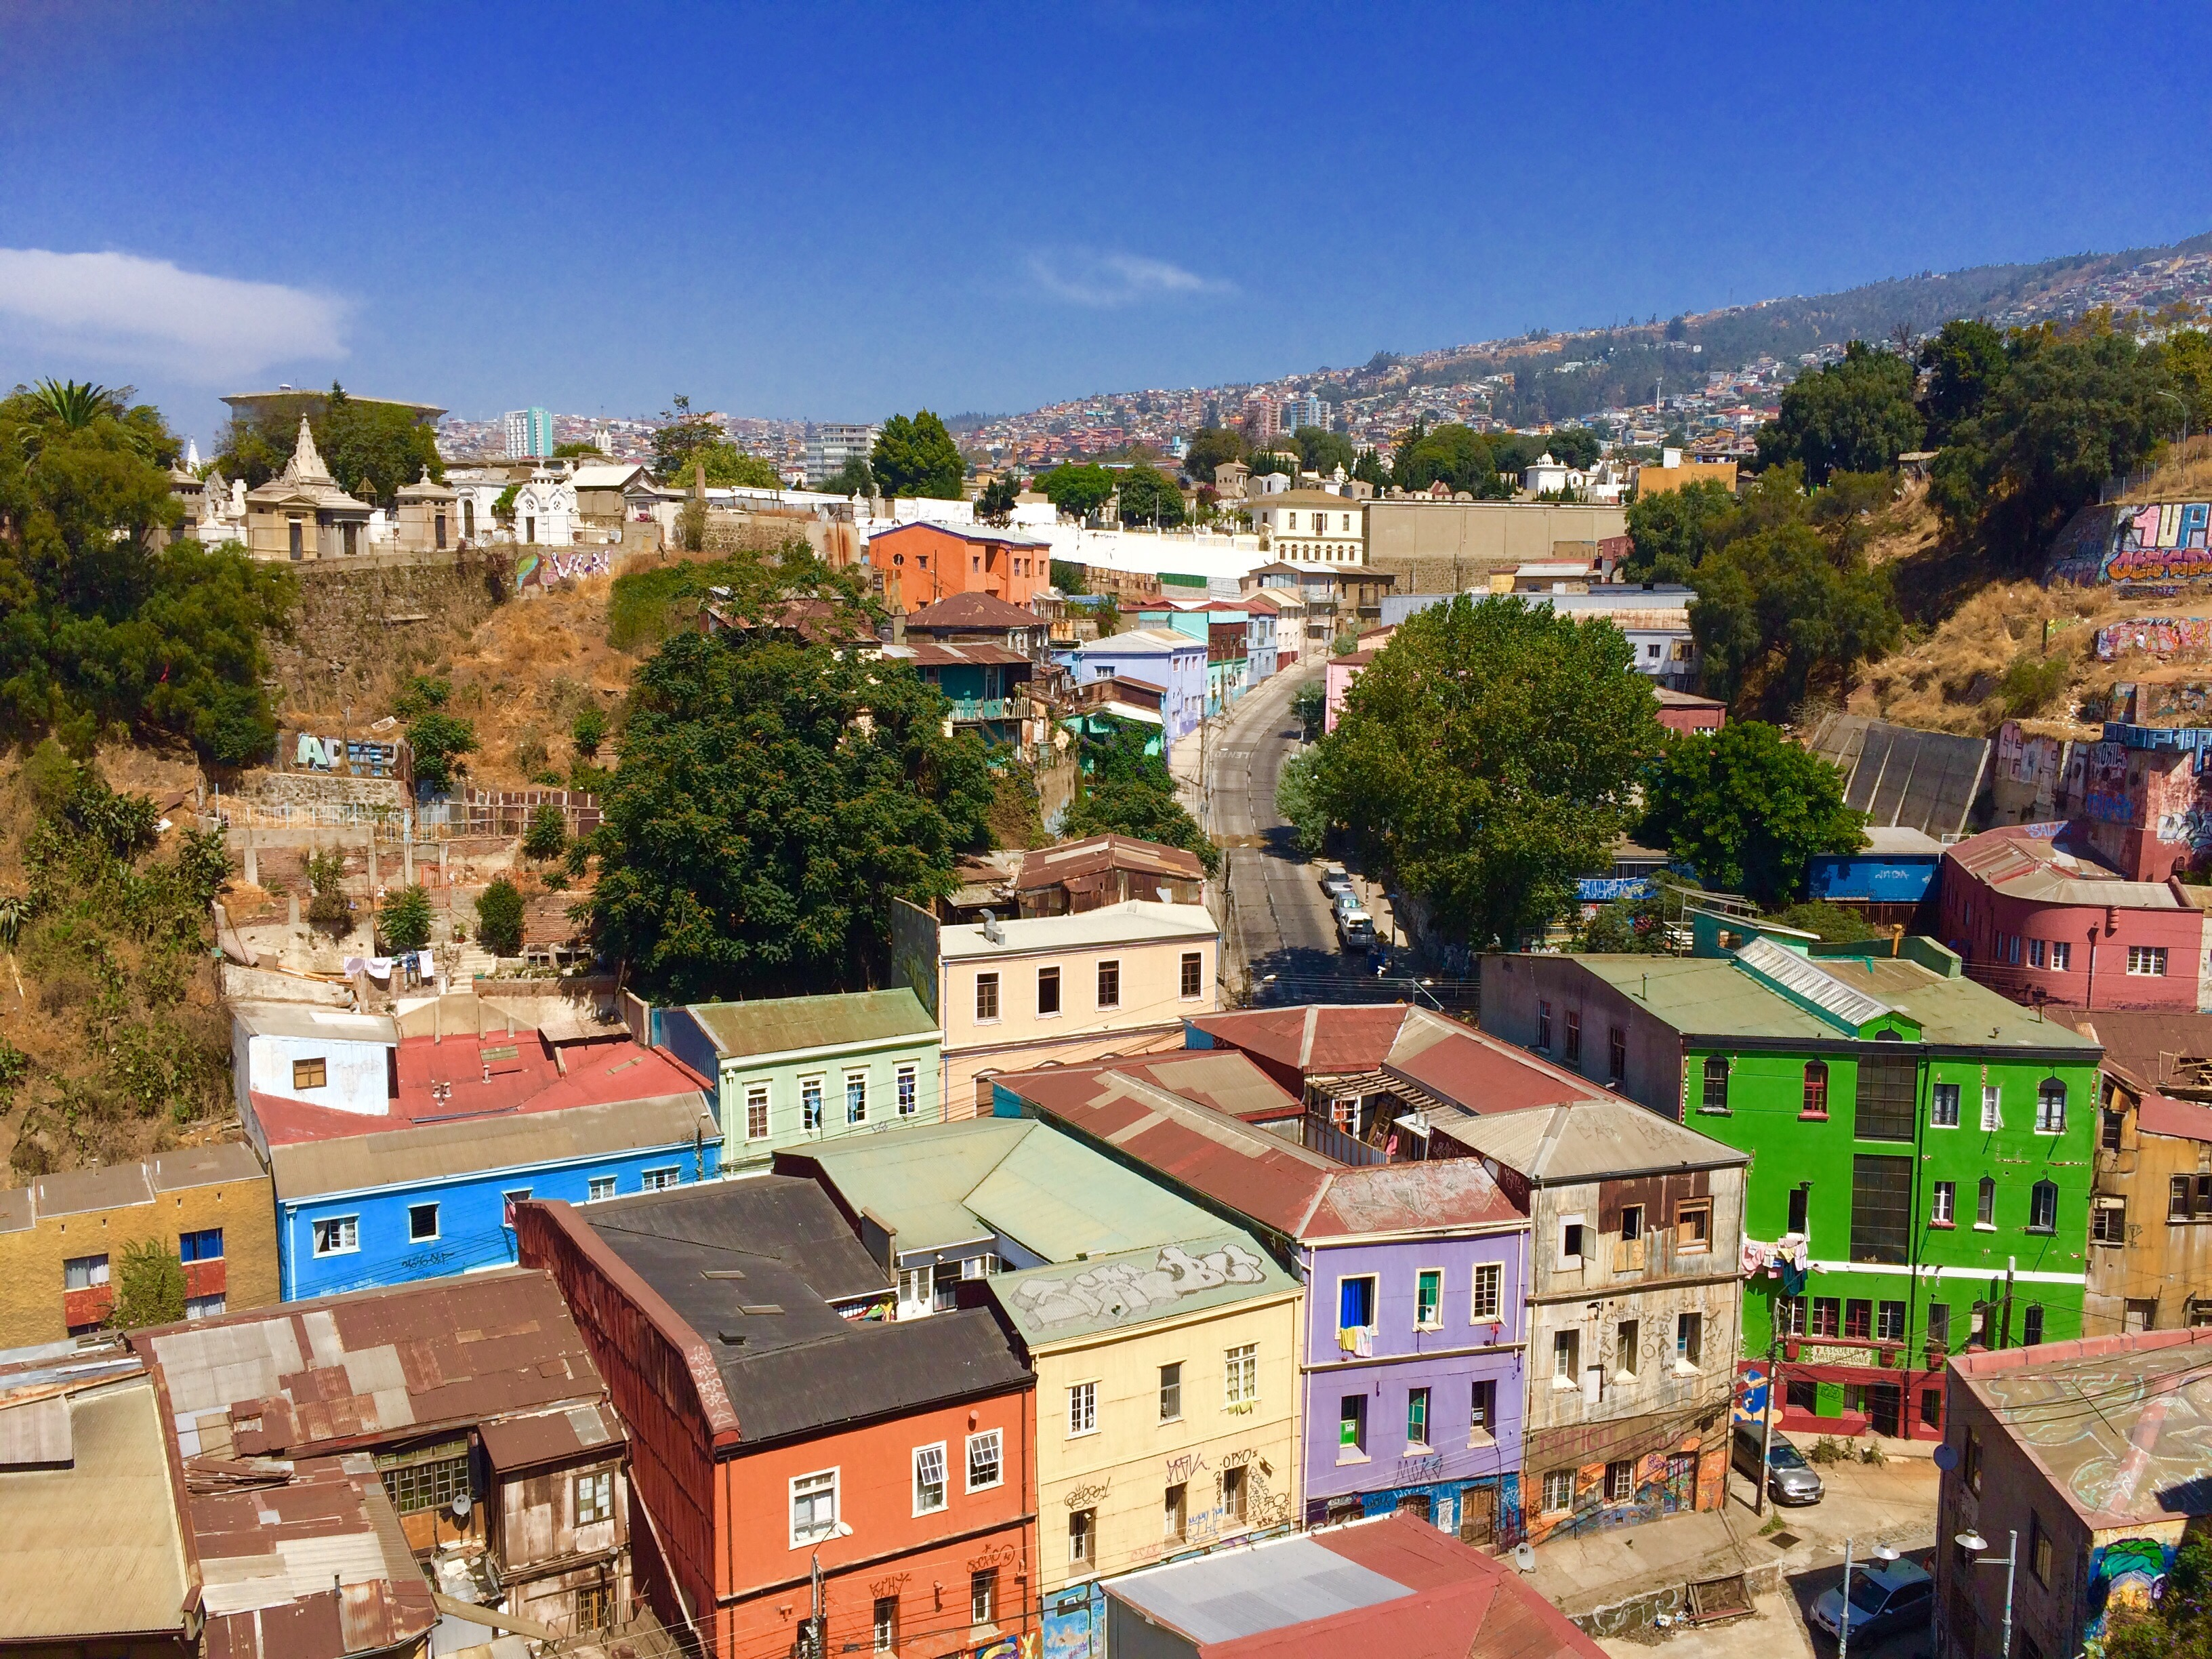 Valparaíso, Chile ((AND a chance for YOU to WIN!!!)) | TwoGirlsTrippin